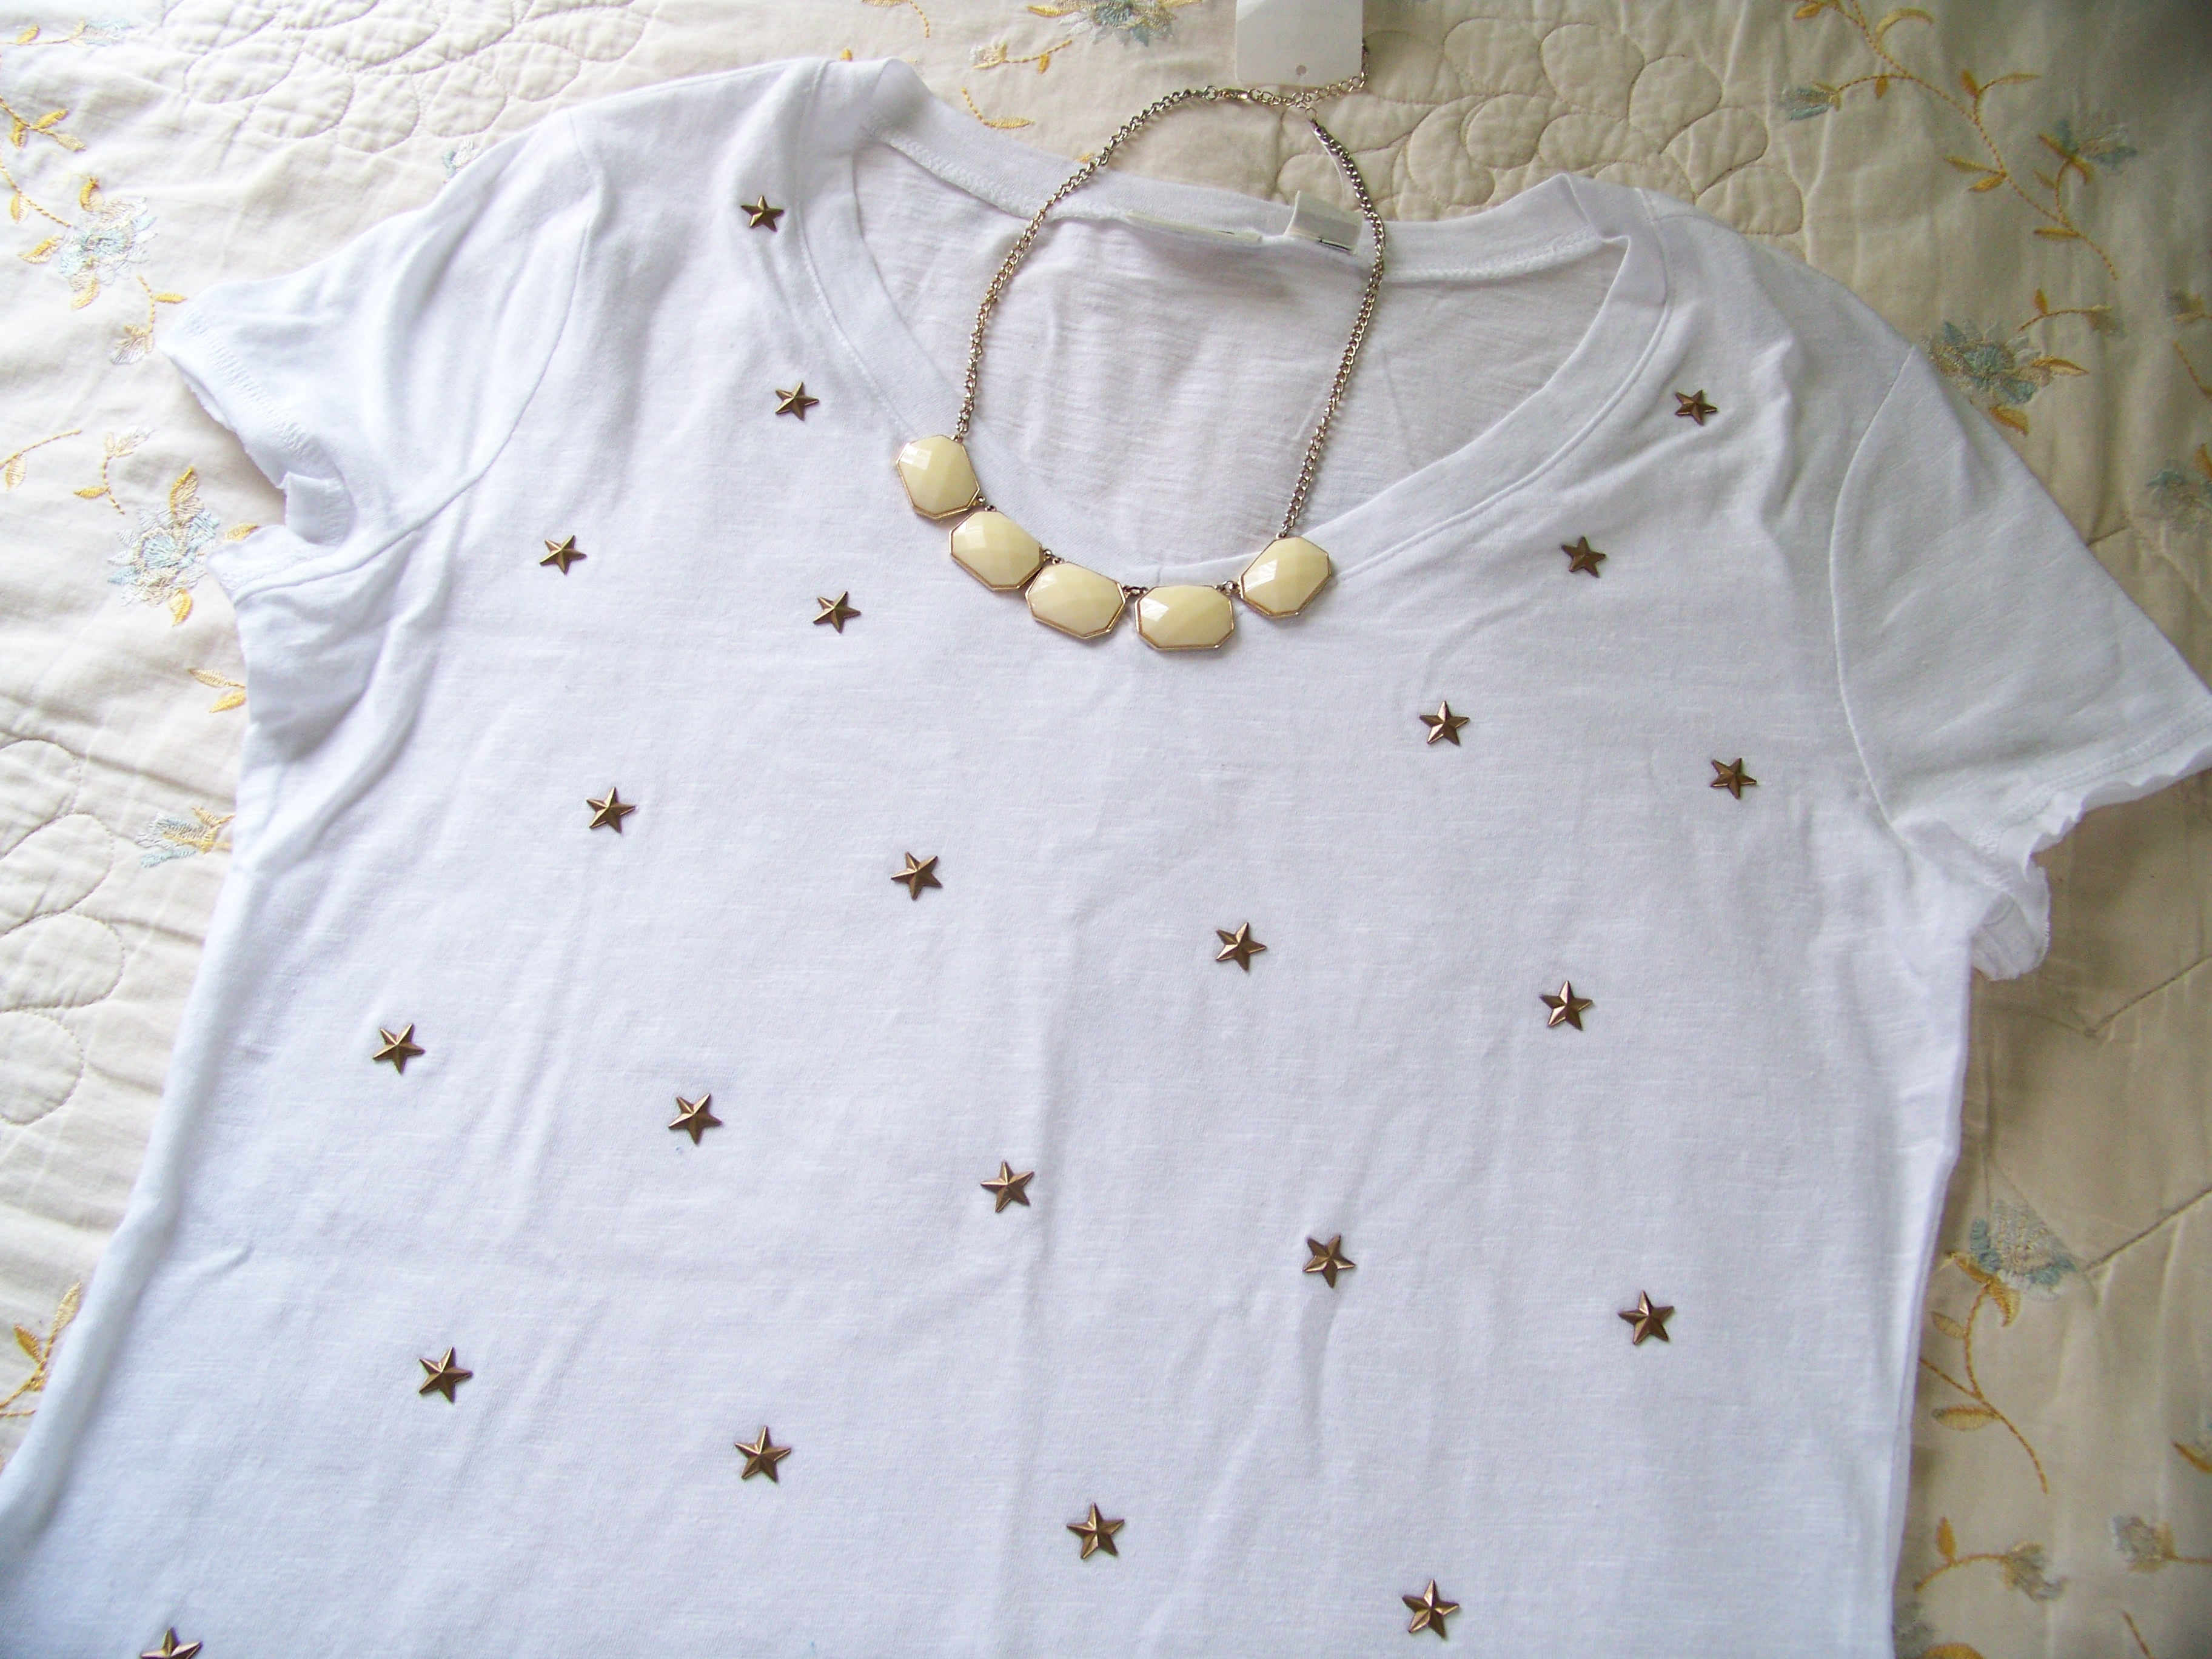 Cato Fashions Clearance Sale Studded T Shirt CATO Fashions